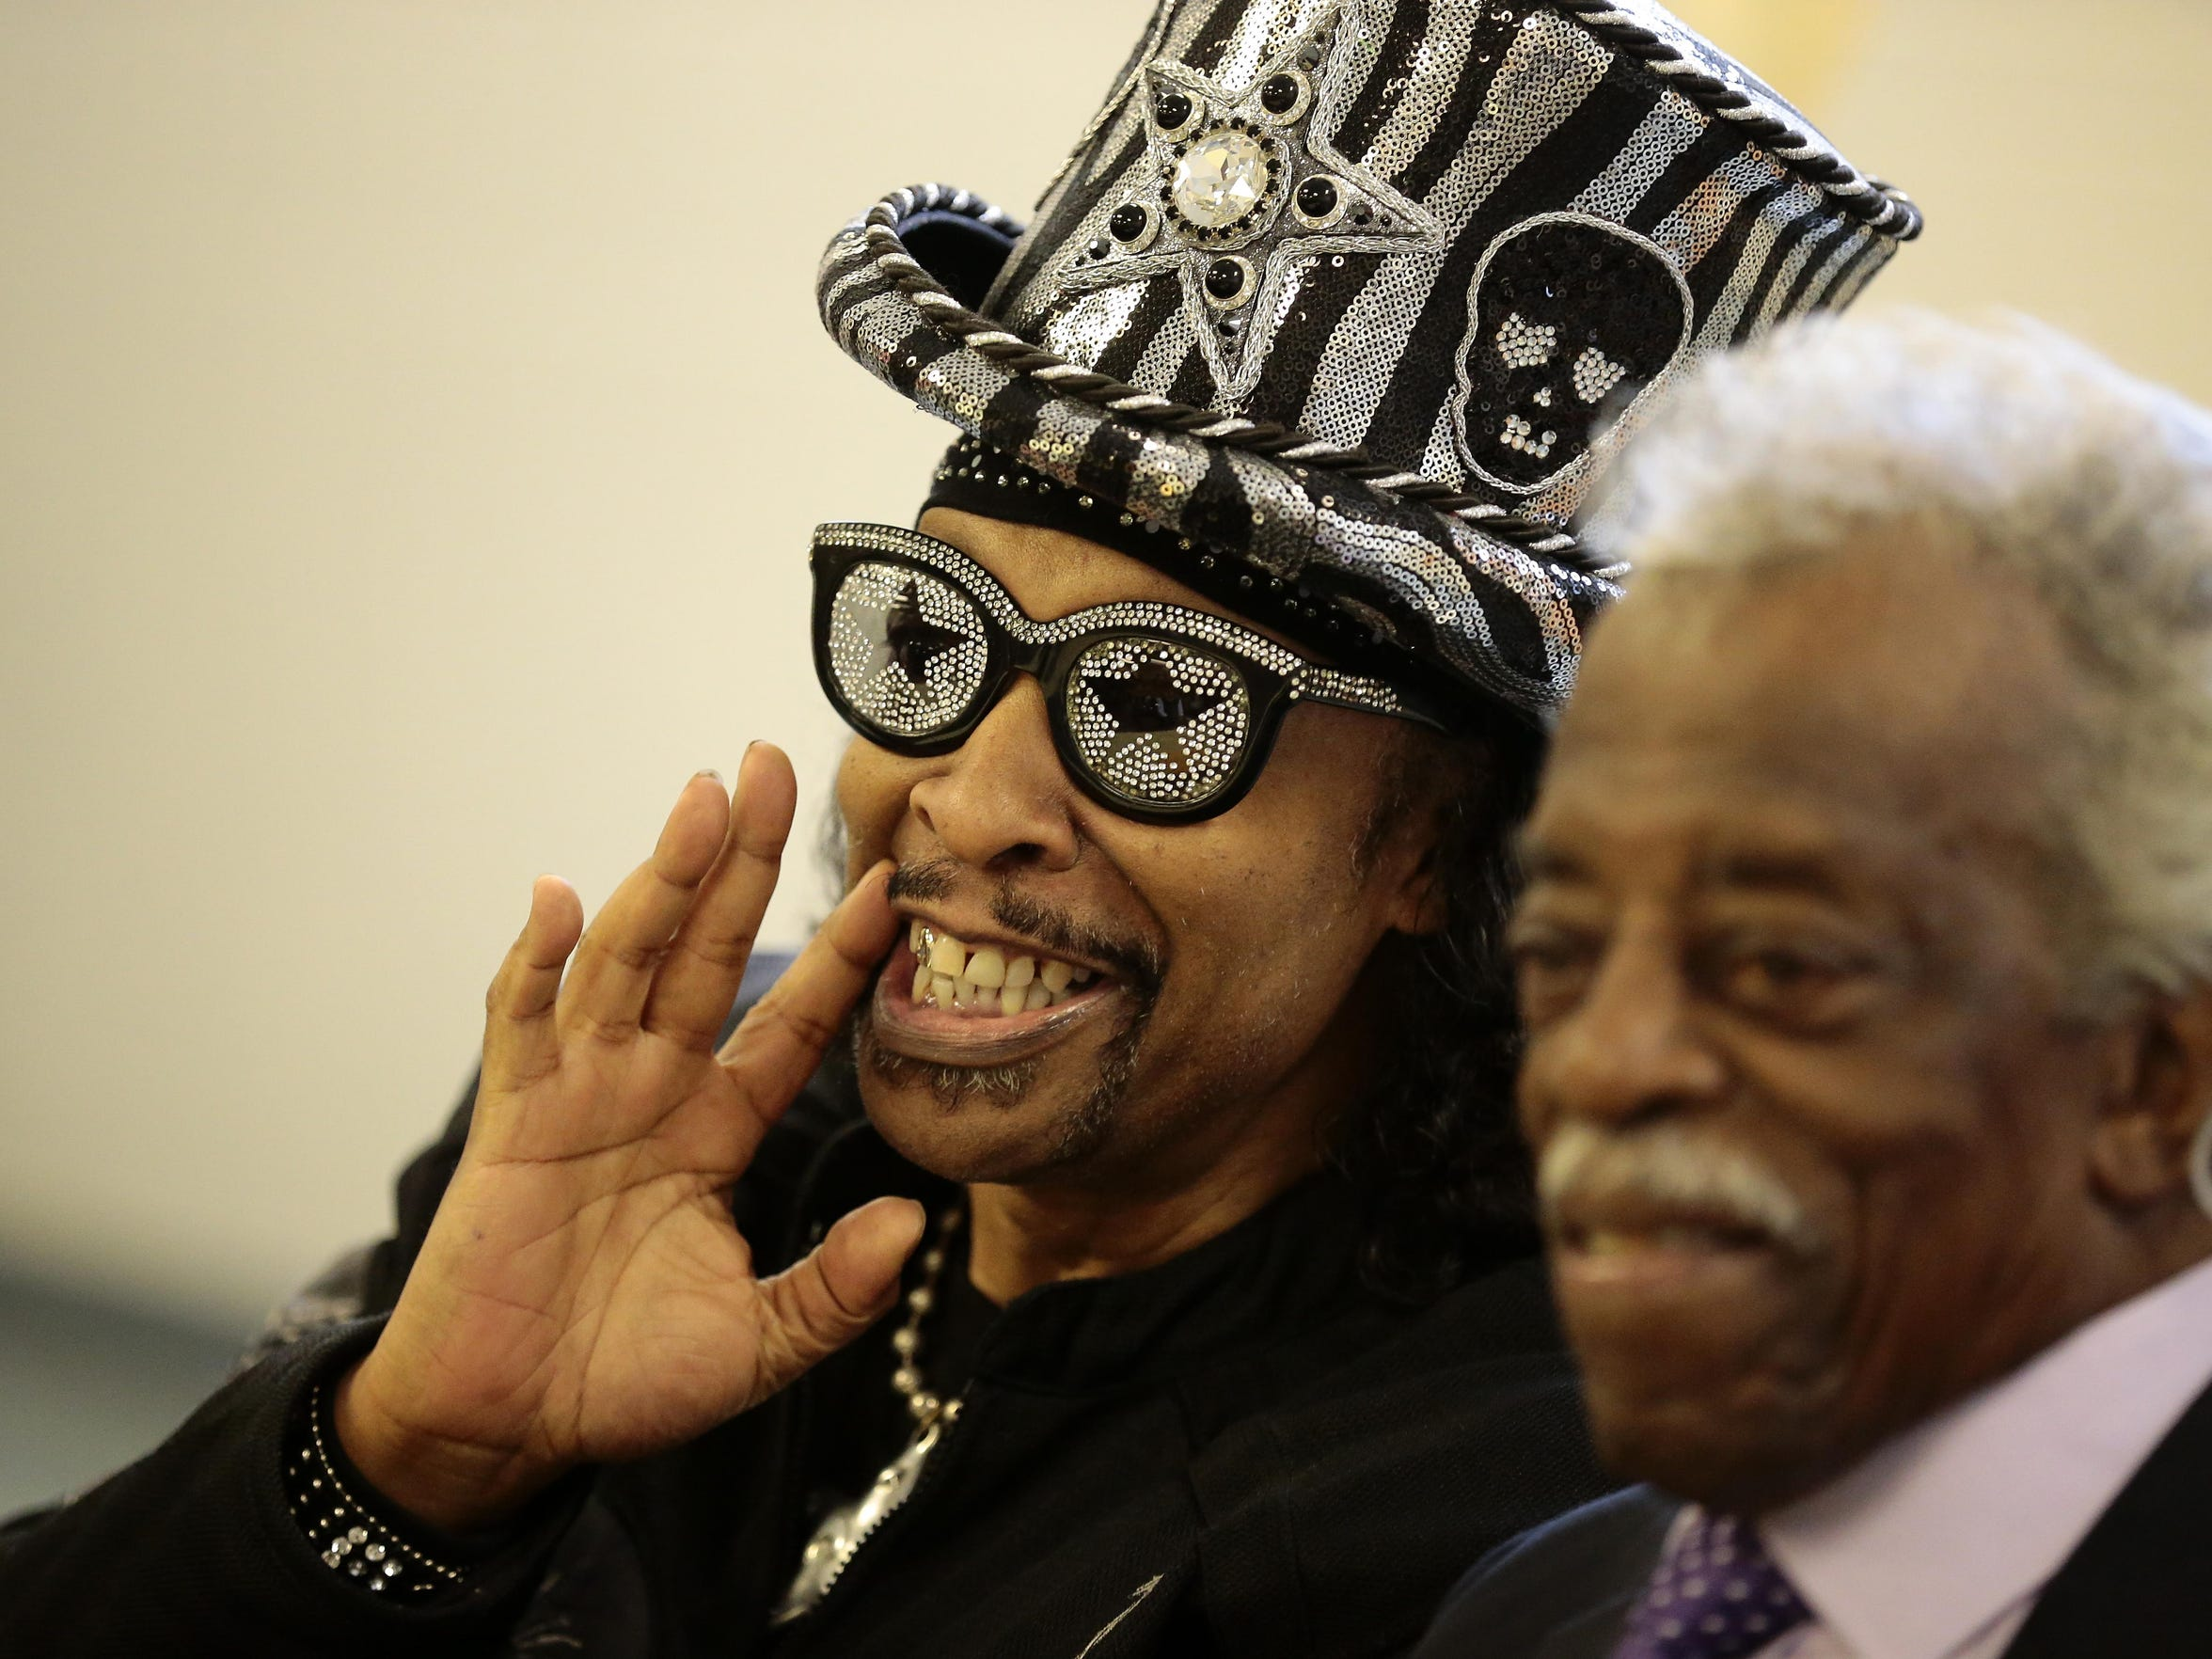 Bootsy Collins and Philip Paul greet well-wishers at the city street re-naming in early 2017.